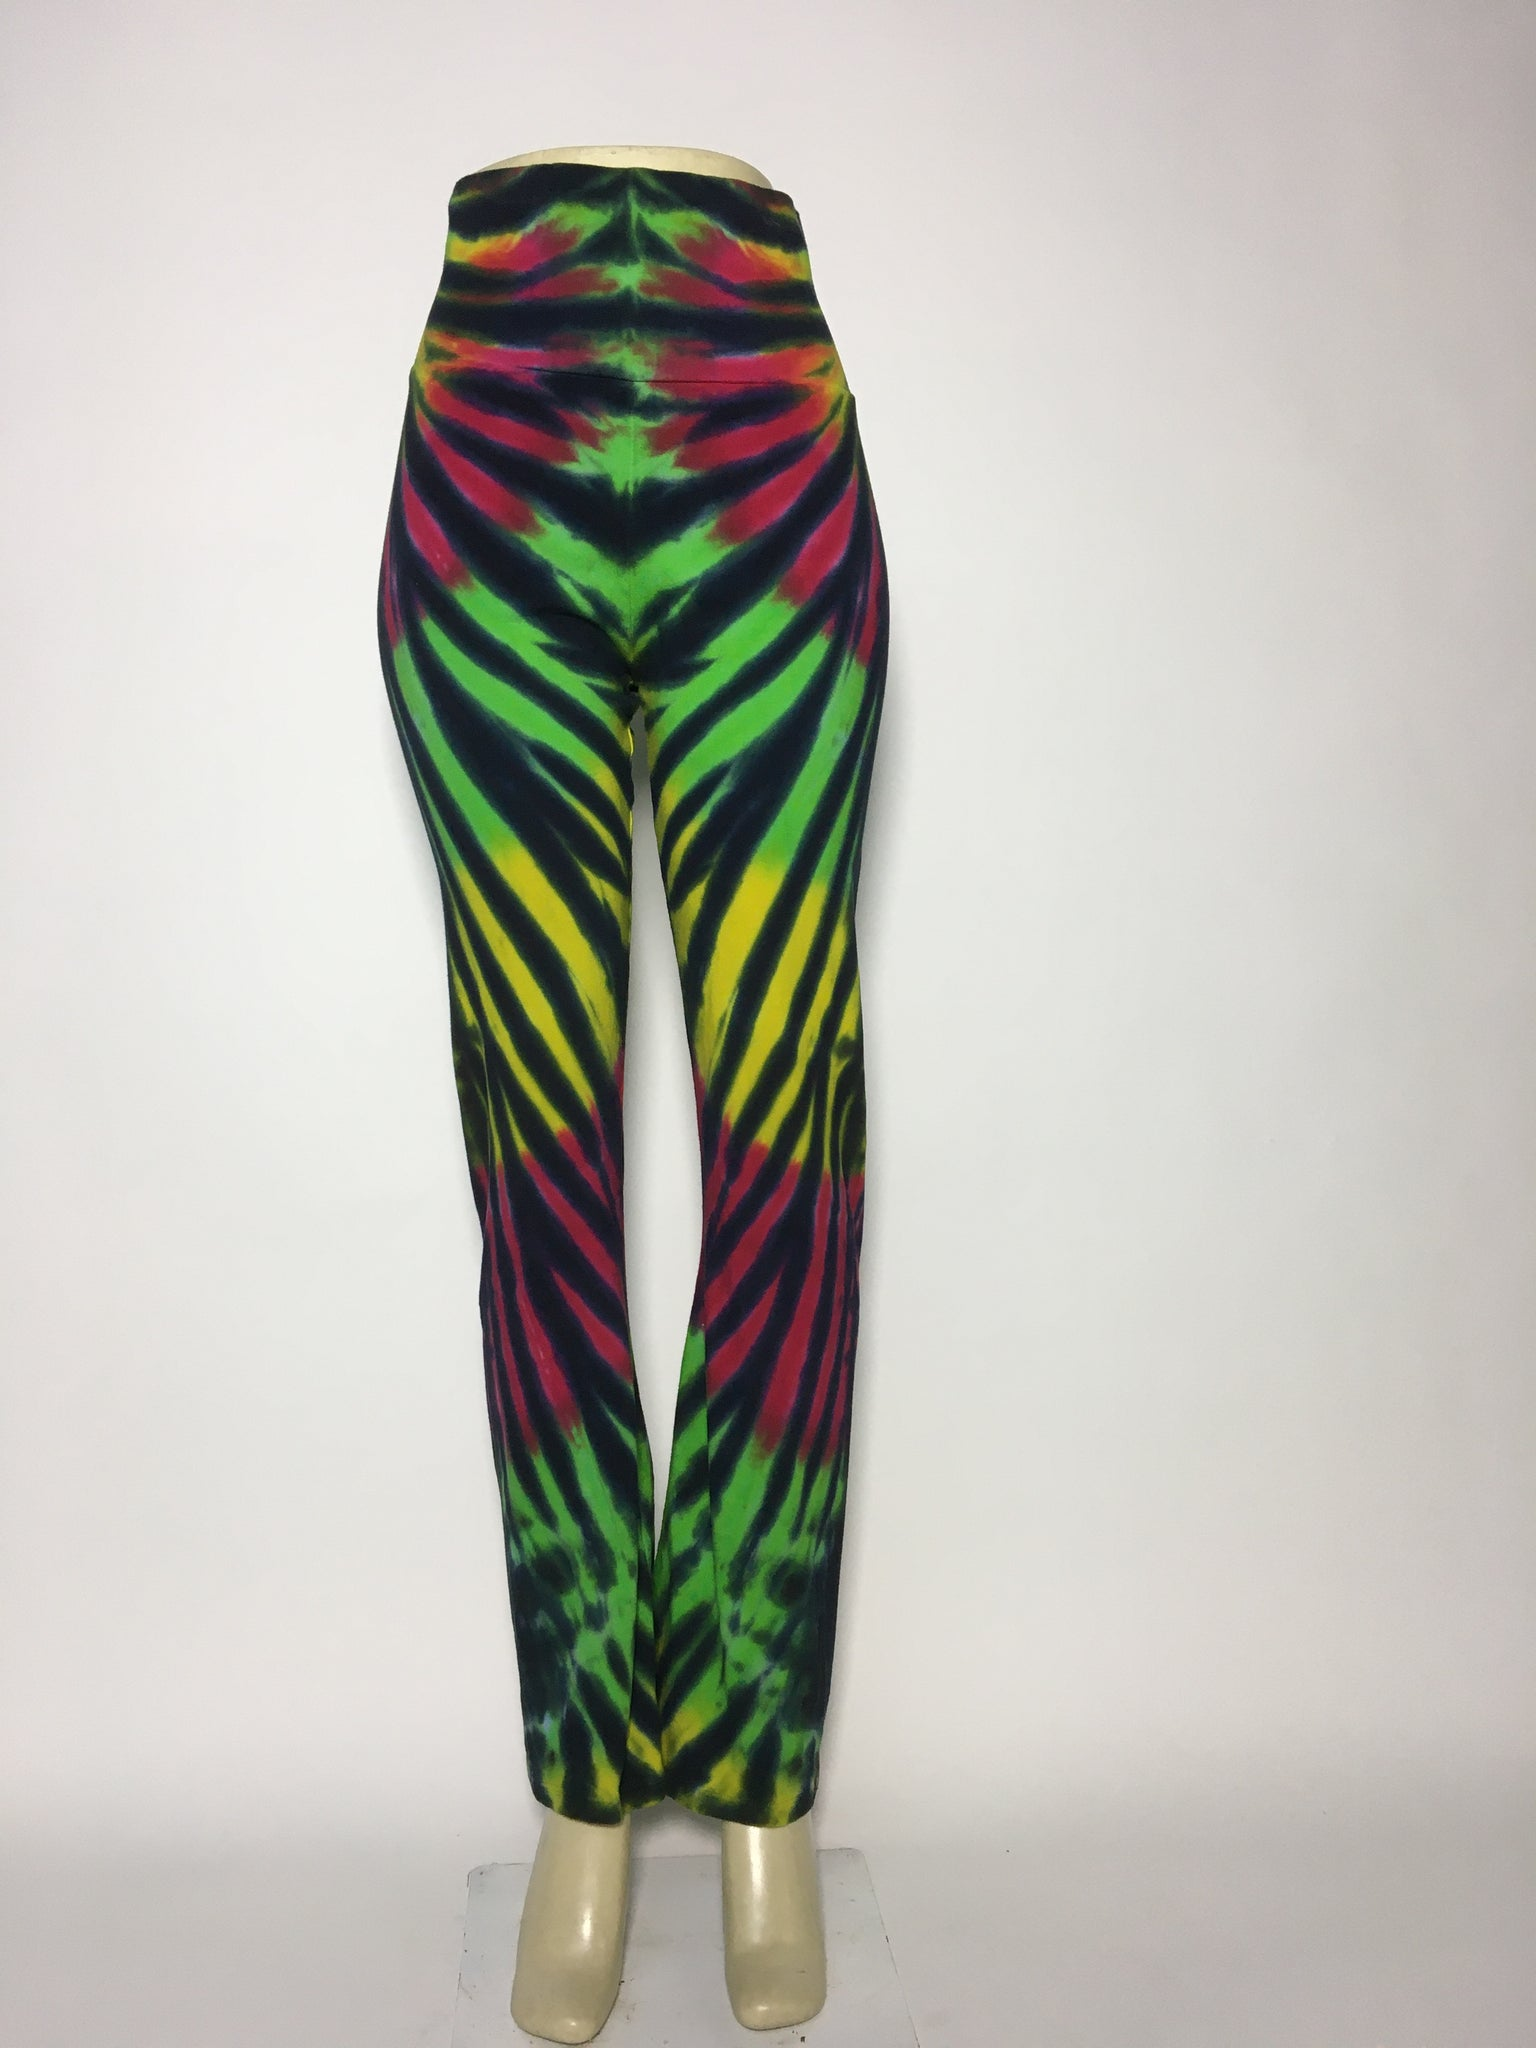 Rasta Tiger Stripe Leggings LG